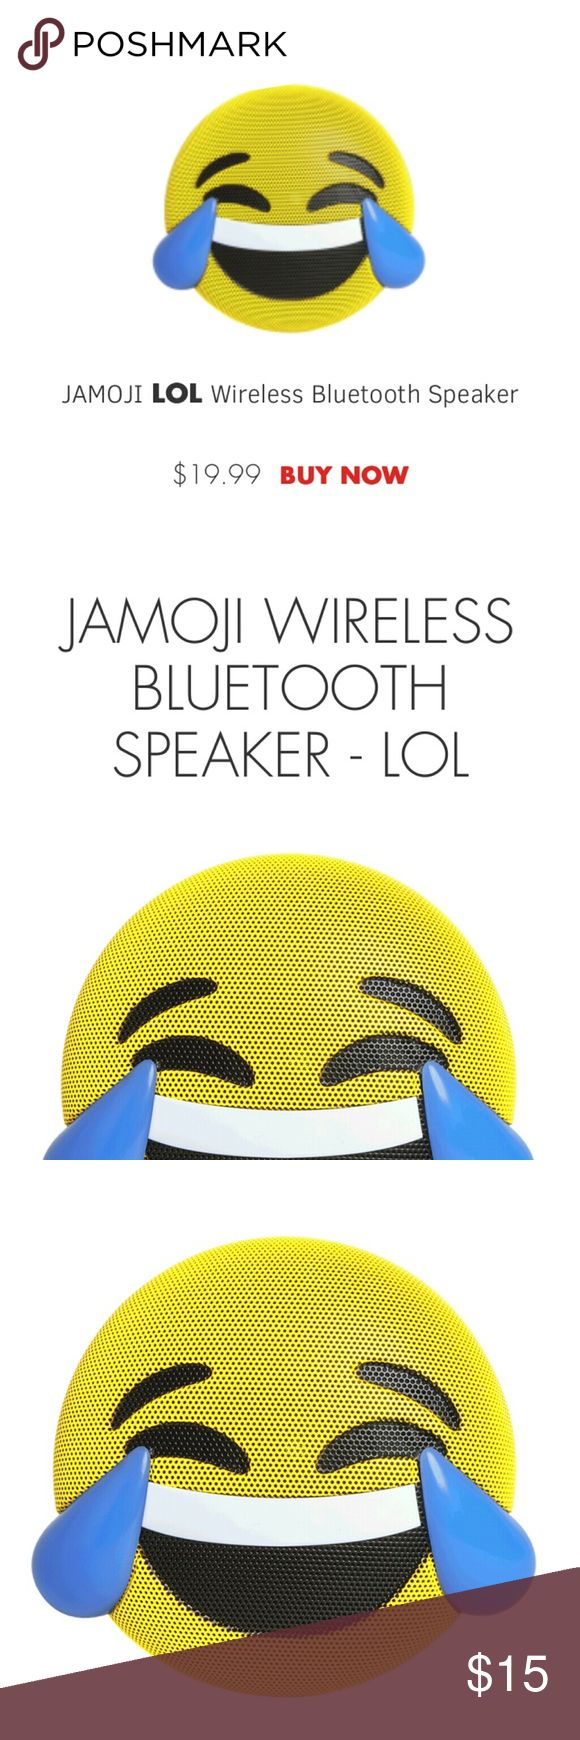 Jamoji Cry-Laugh Emoji Wireless Speaker Show off your attitude and crank up the tunes with completely wireless Jamoji speakers. Choose from a range of fun emoji designs that highlight your silly side. All speakers are rechargeable and deliver up to six hours of play time on a full charge. Bluetooth compatibility makes them easy to connect to your favorite devices, and the speakerphone feature lets you answer calls directly from your speaker. Jamoji Other